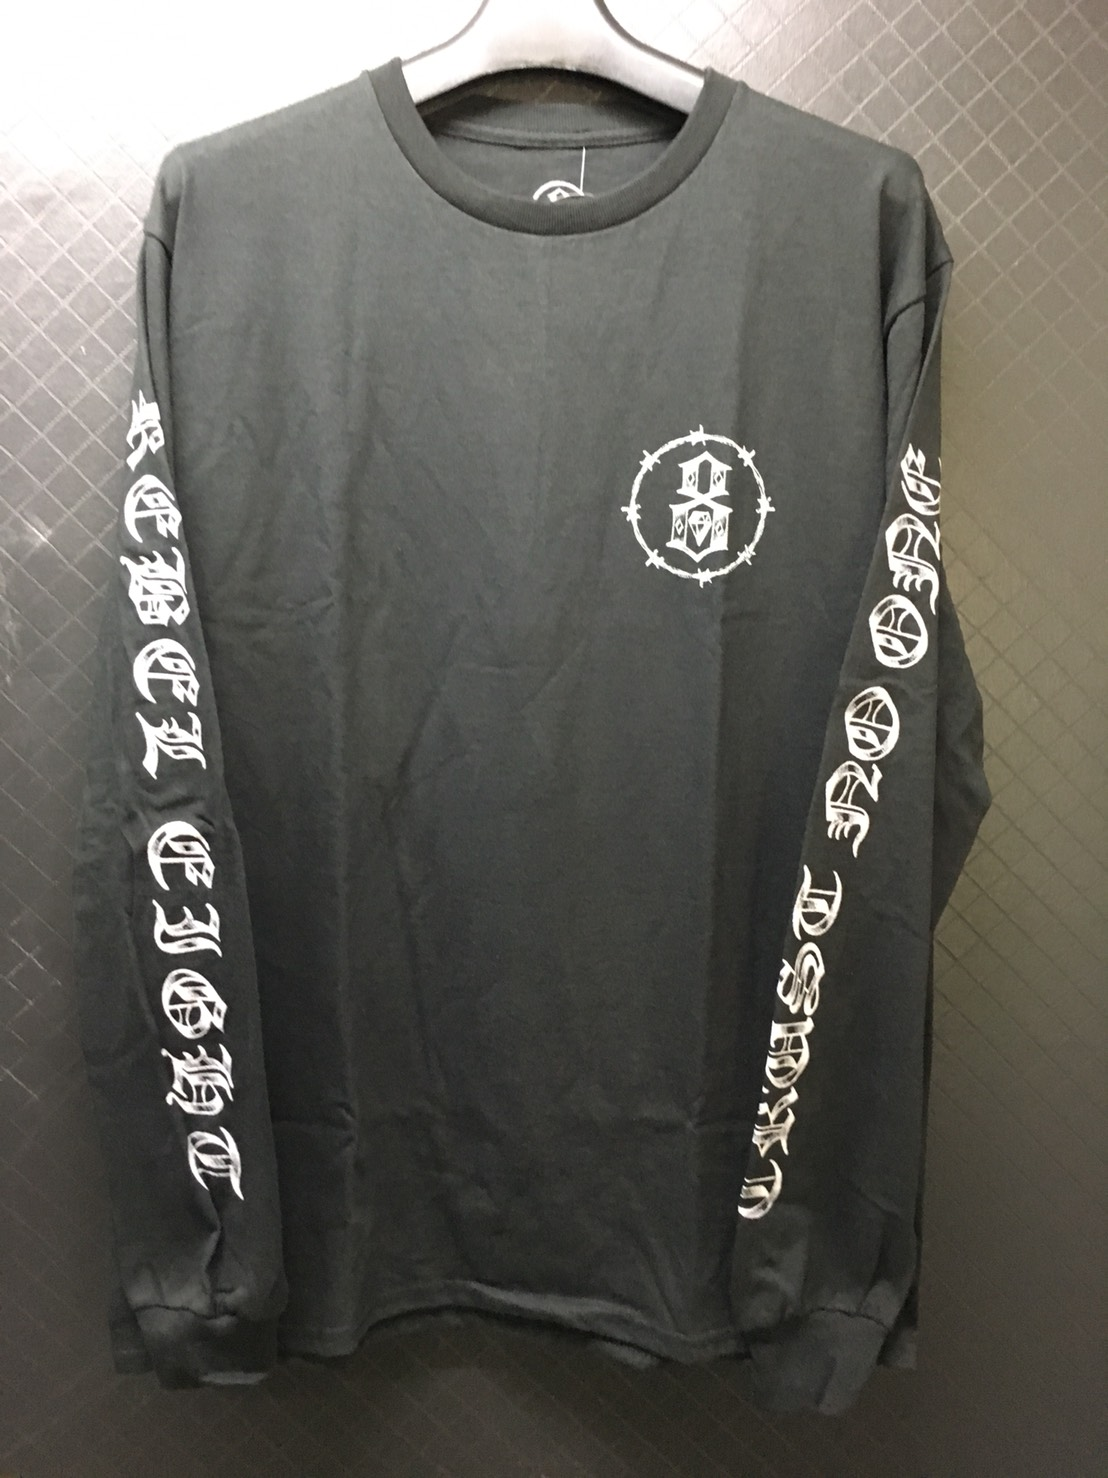 rebel8 Trust No One Longsleeve Tee